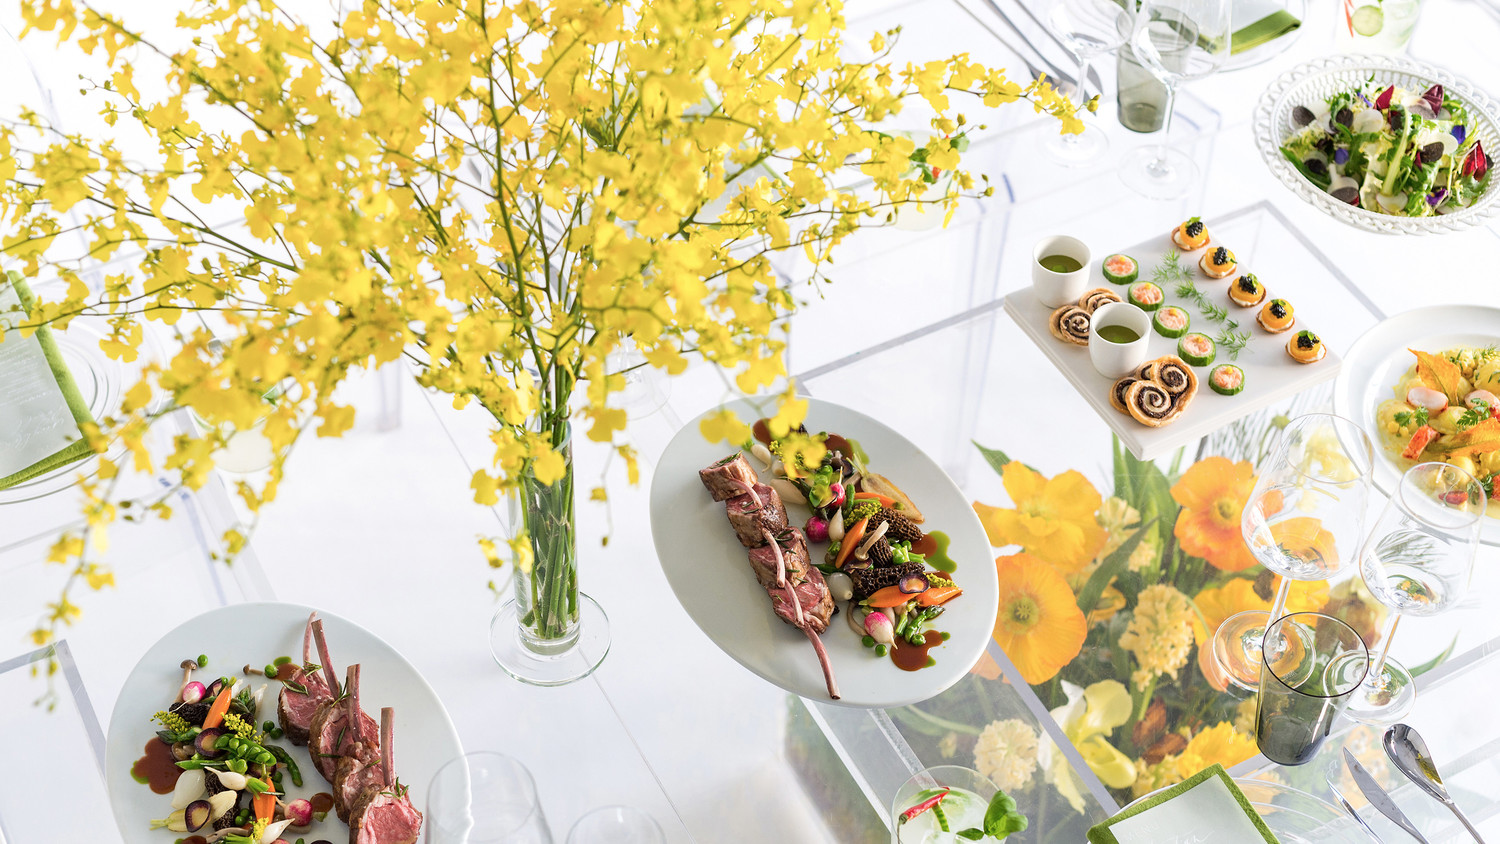 Chris Hessney Spring Shoot Forsythia Centerpiece and Seasonal Food